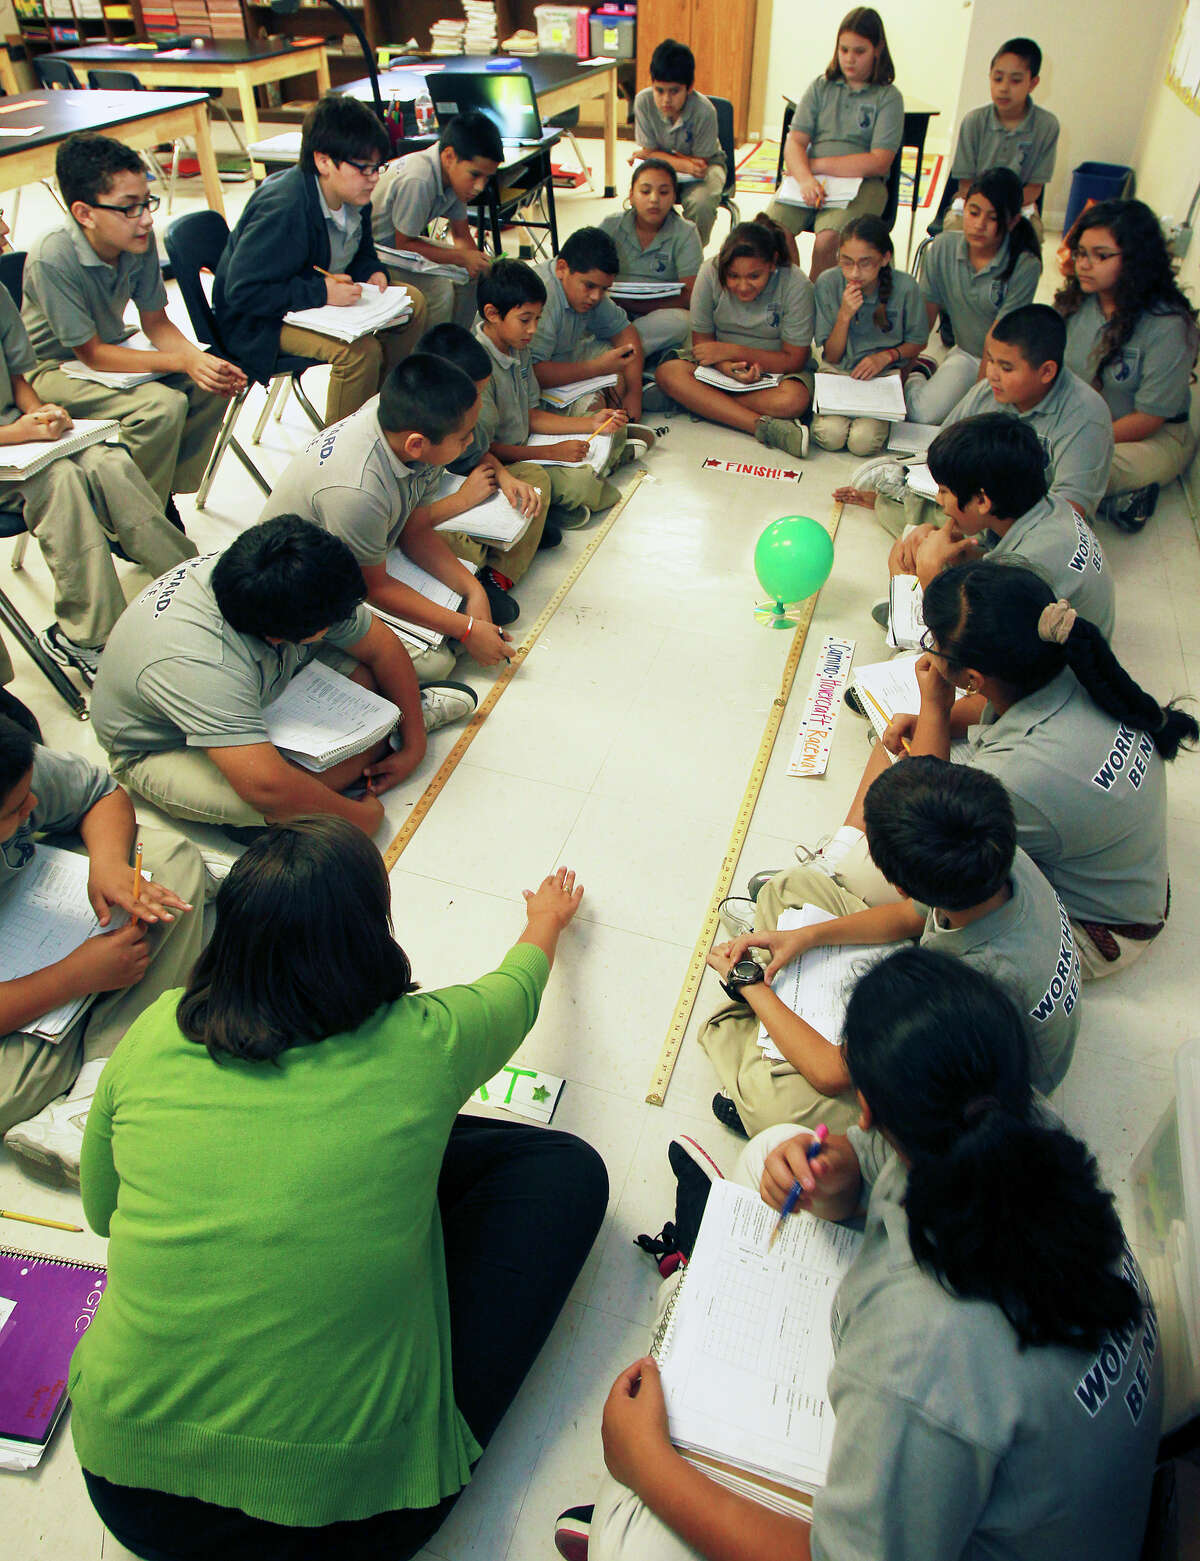 Students in Jennifer Ortegon's fifth grade science class time the release of air from a baloon experiment as KIPP Camino Academy conducts classes on October 17, 2012.